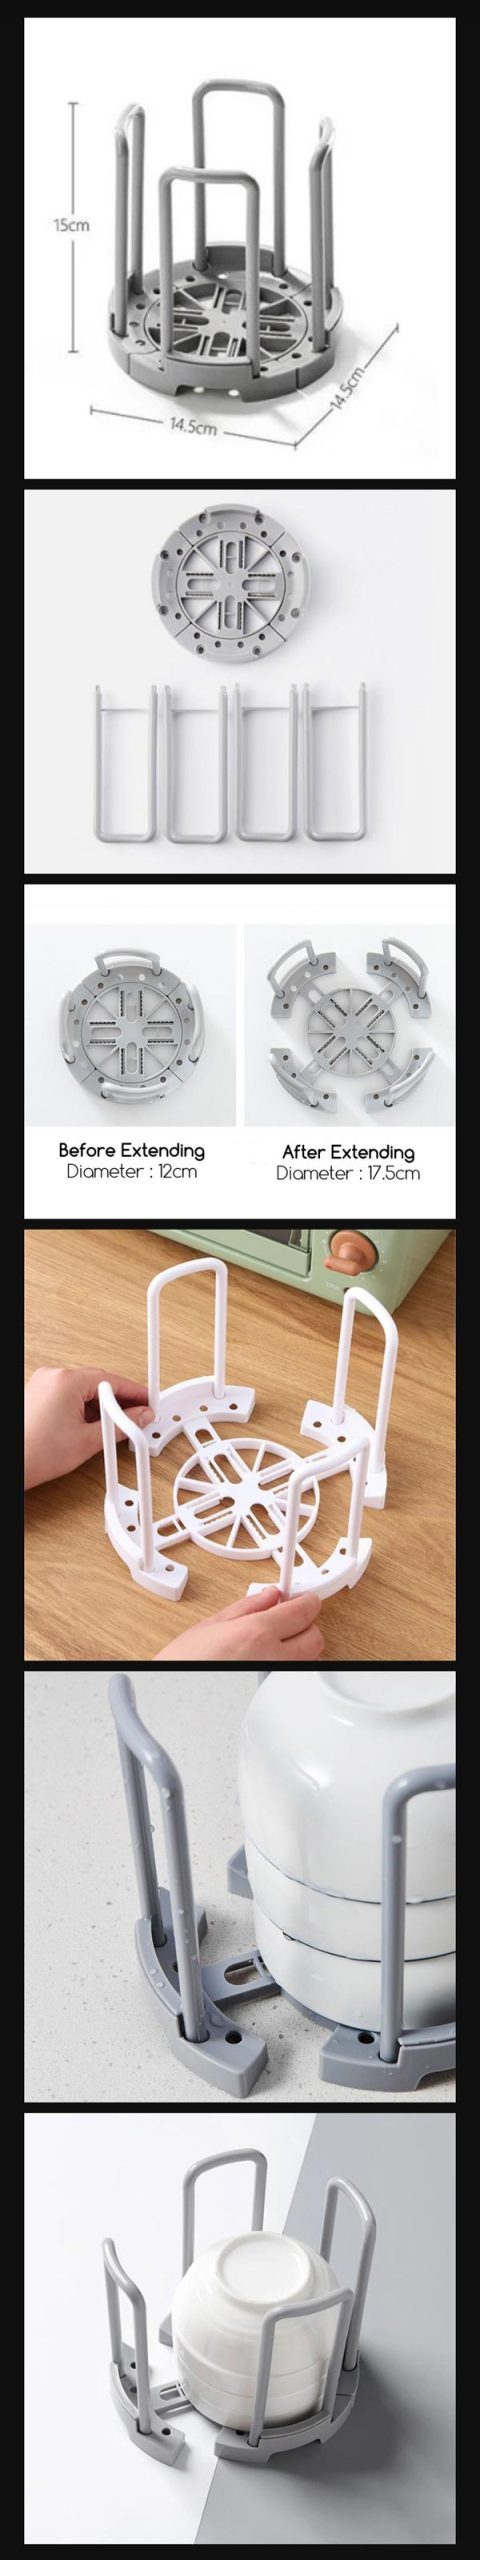 Retractable Bowl Stand